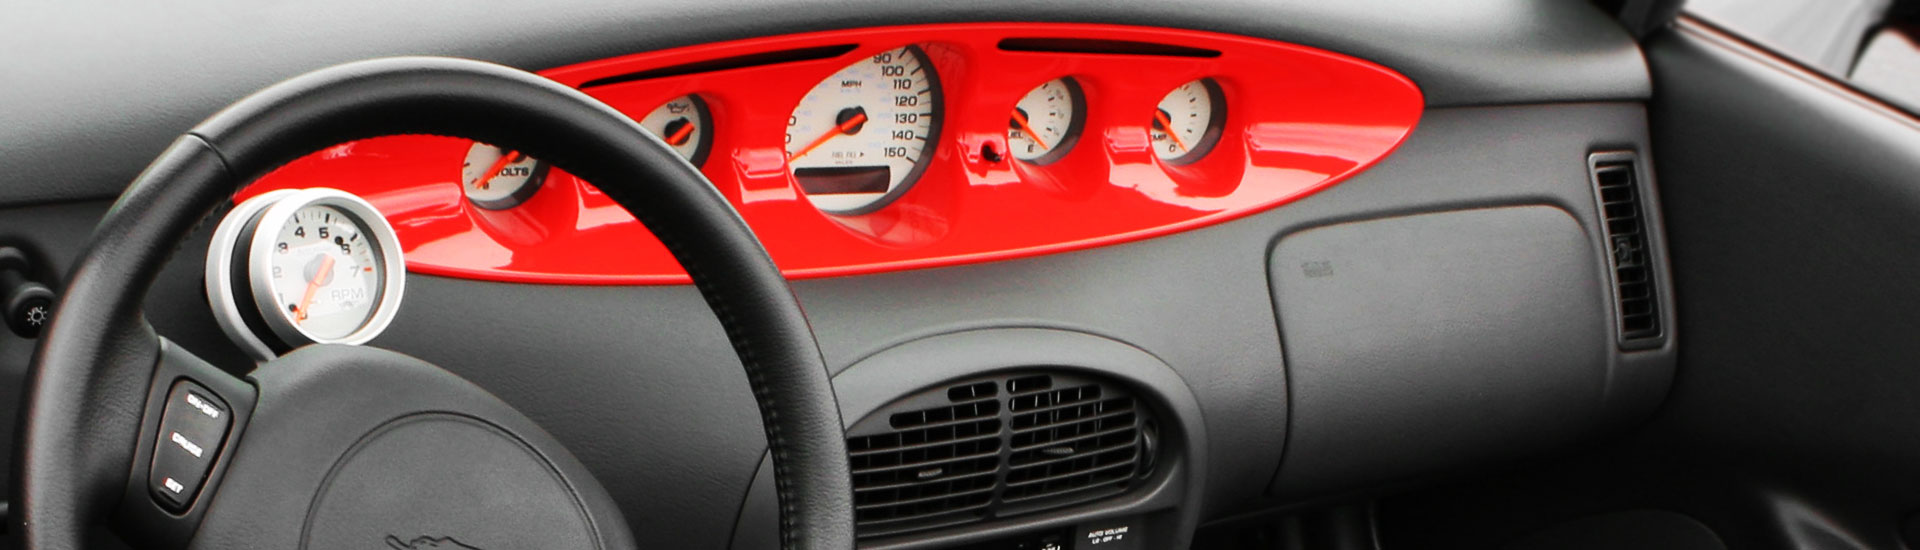 Chrysler Prowler Custom Dash Kits